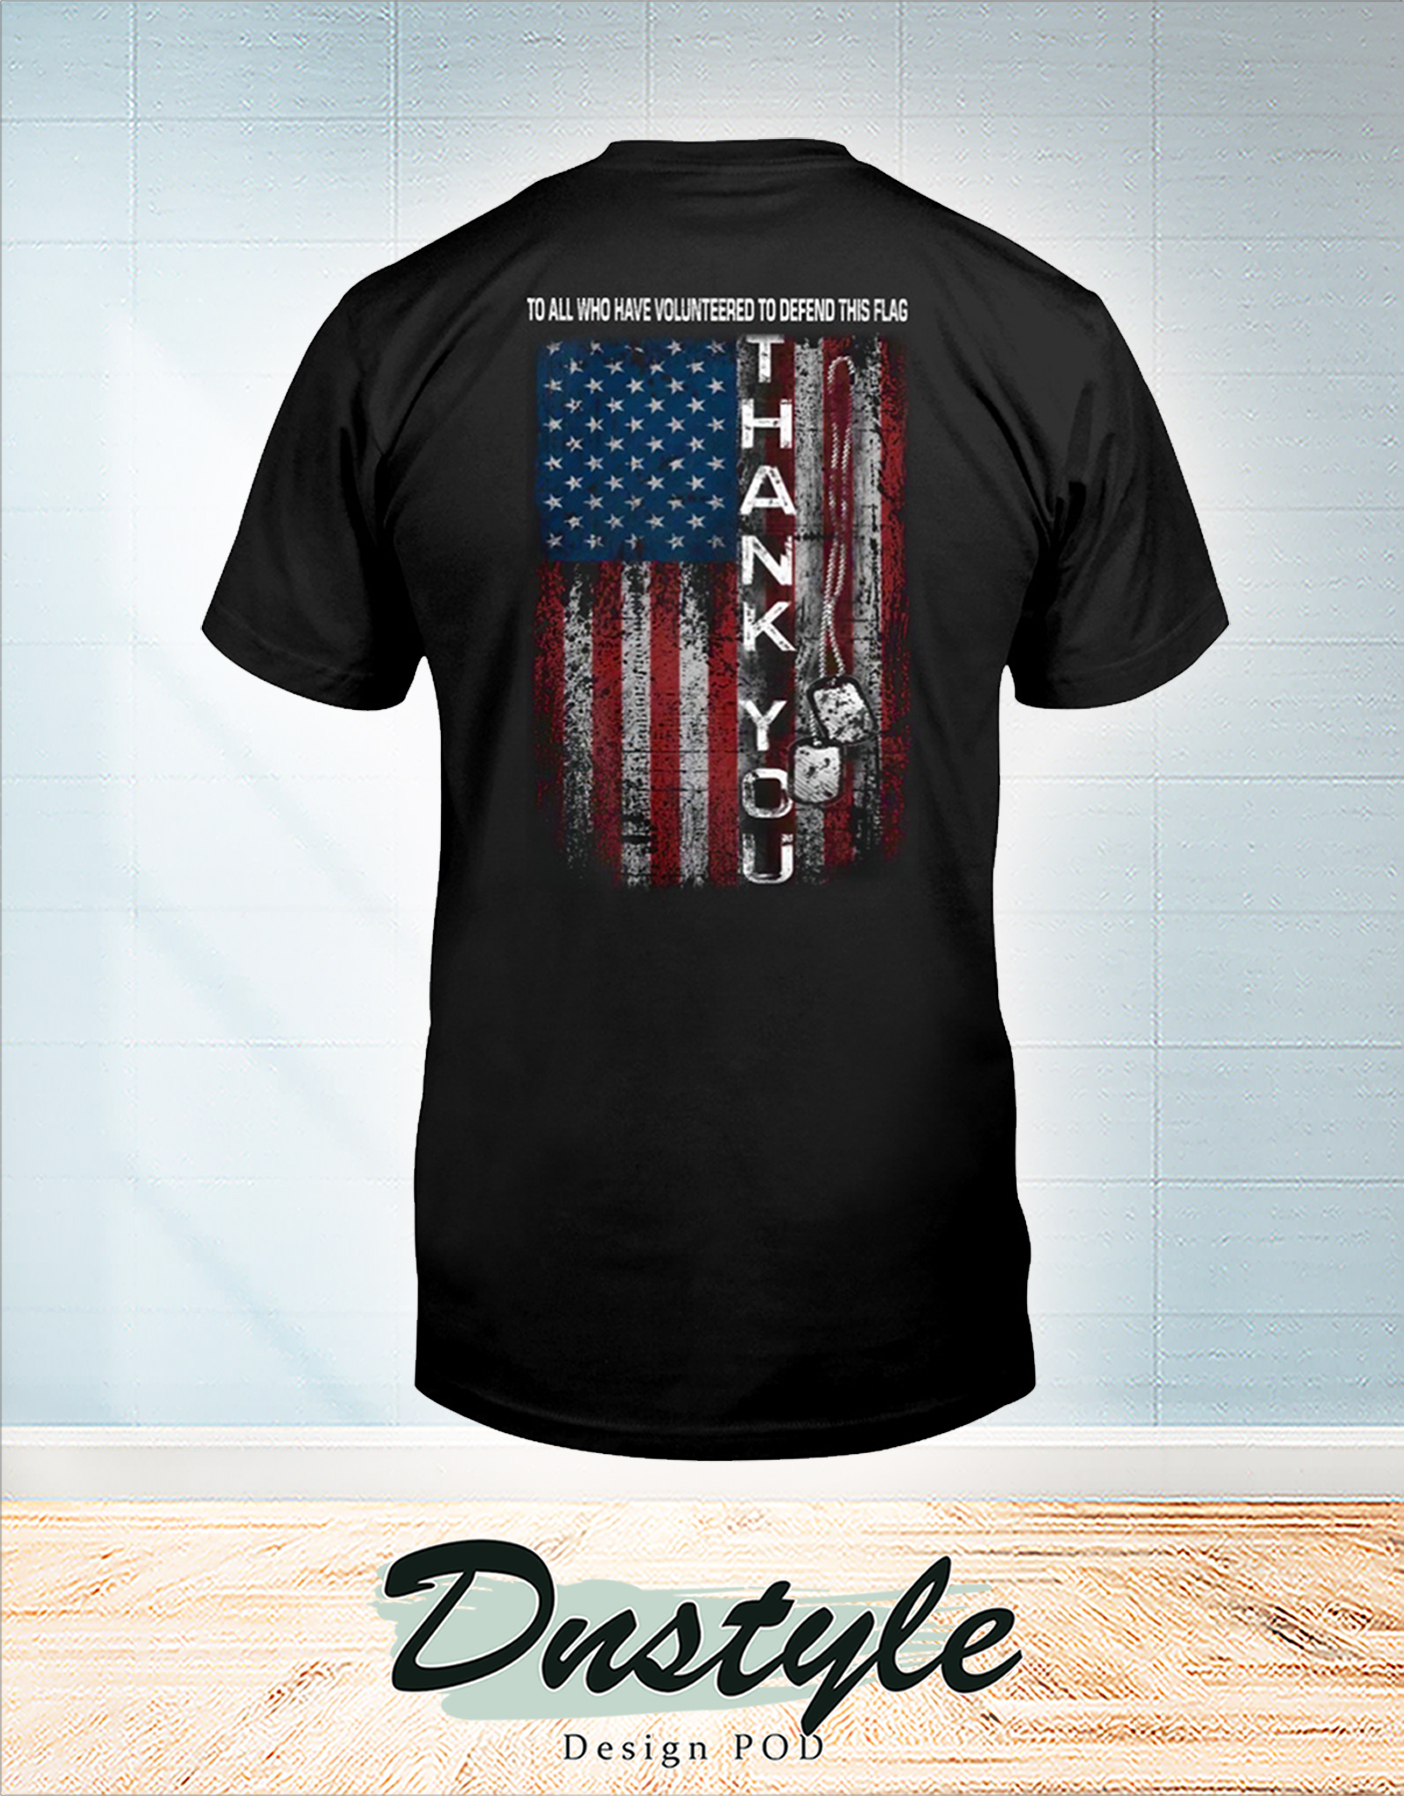 To all who have volunteered to defend this flag shirt